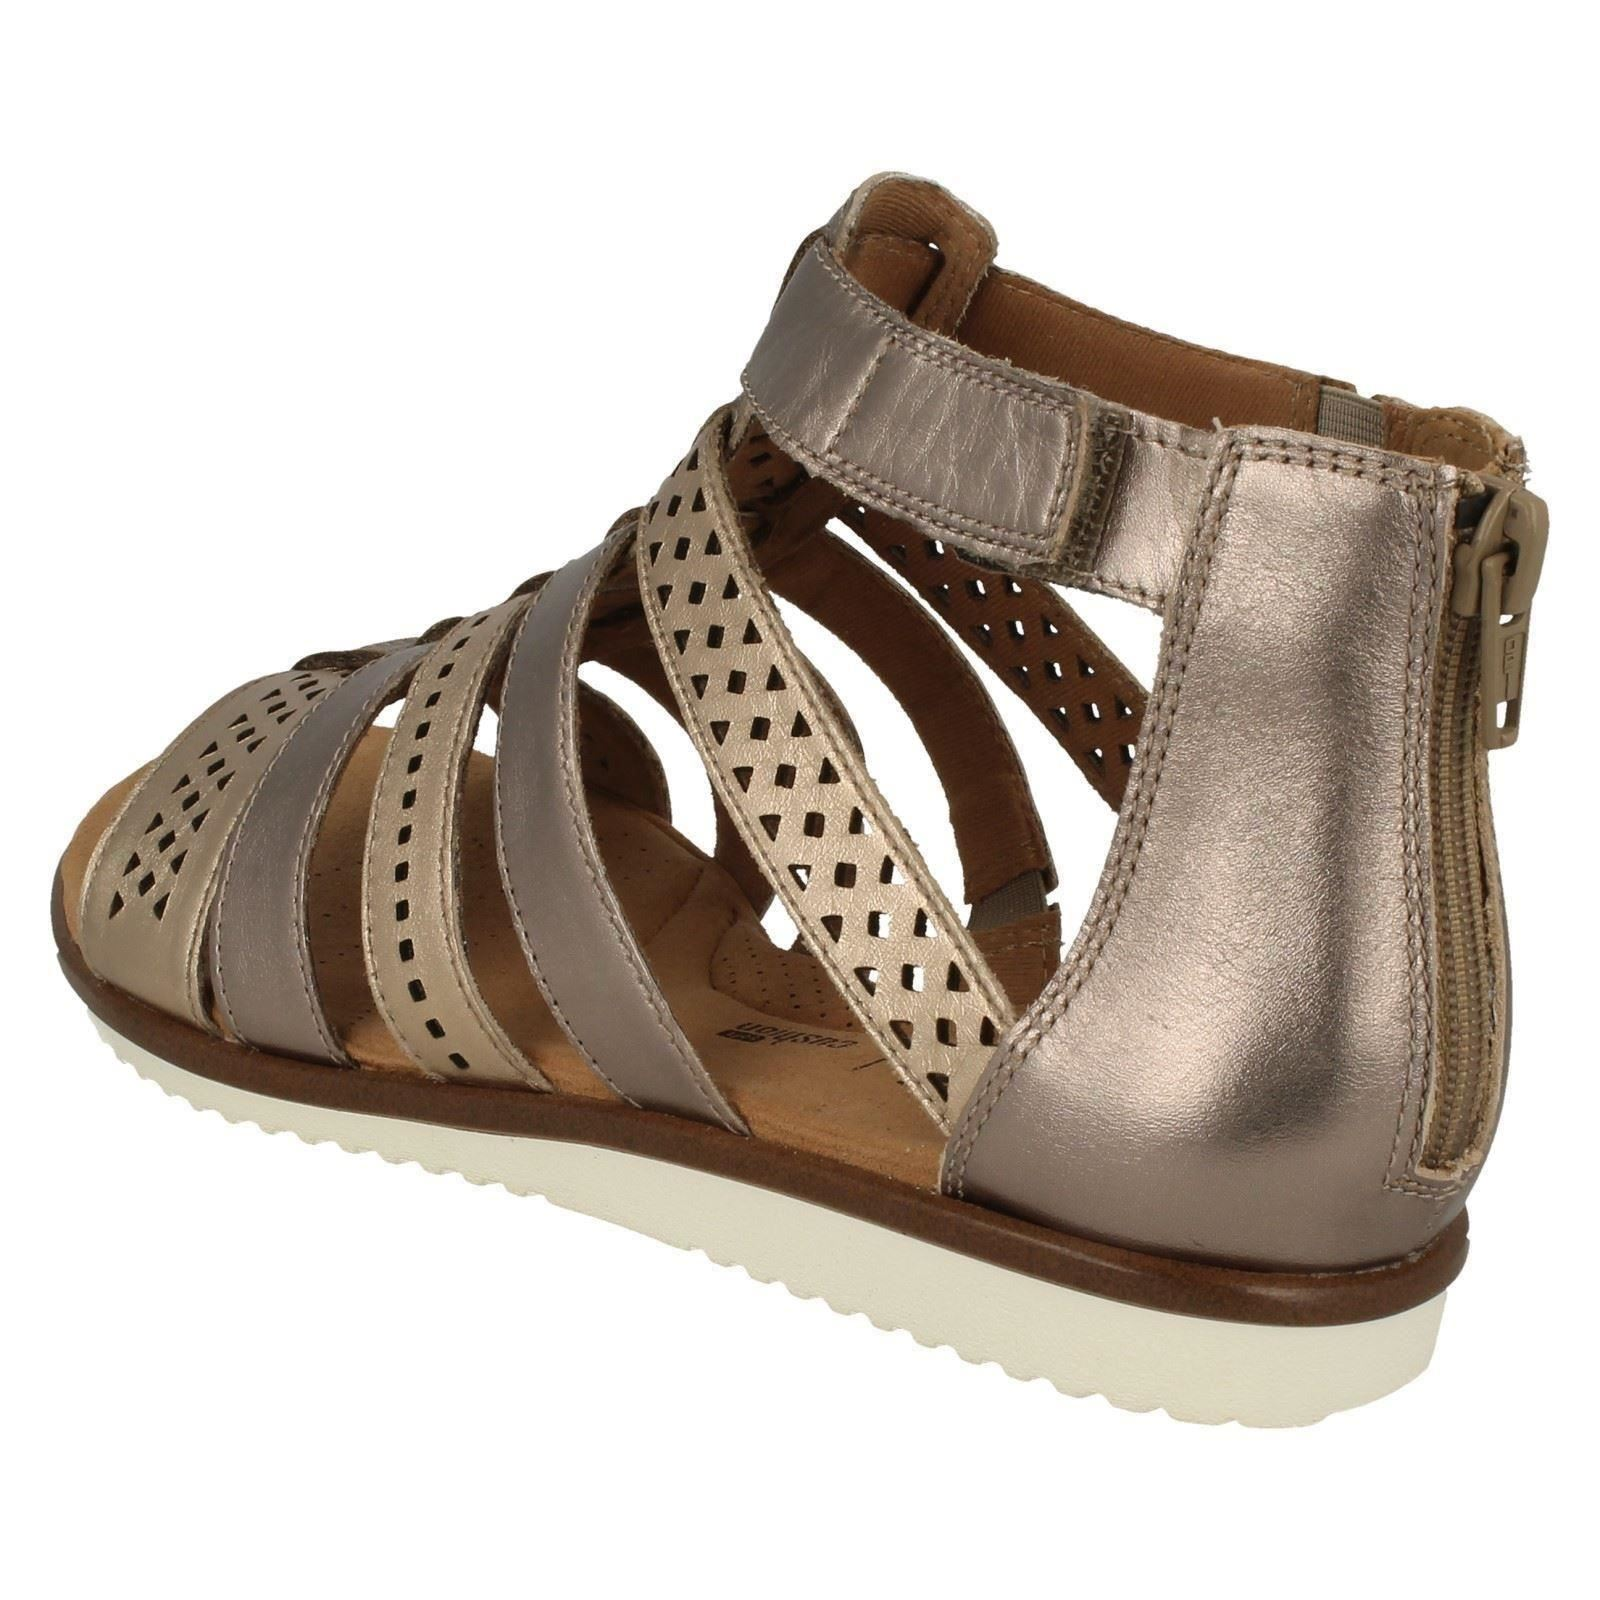 af93d1154802 Ladies-Clarks-Kele-Lotus-Gladiator-Sandals thumbnail 4